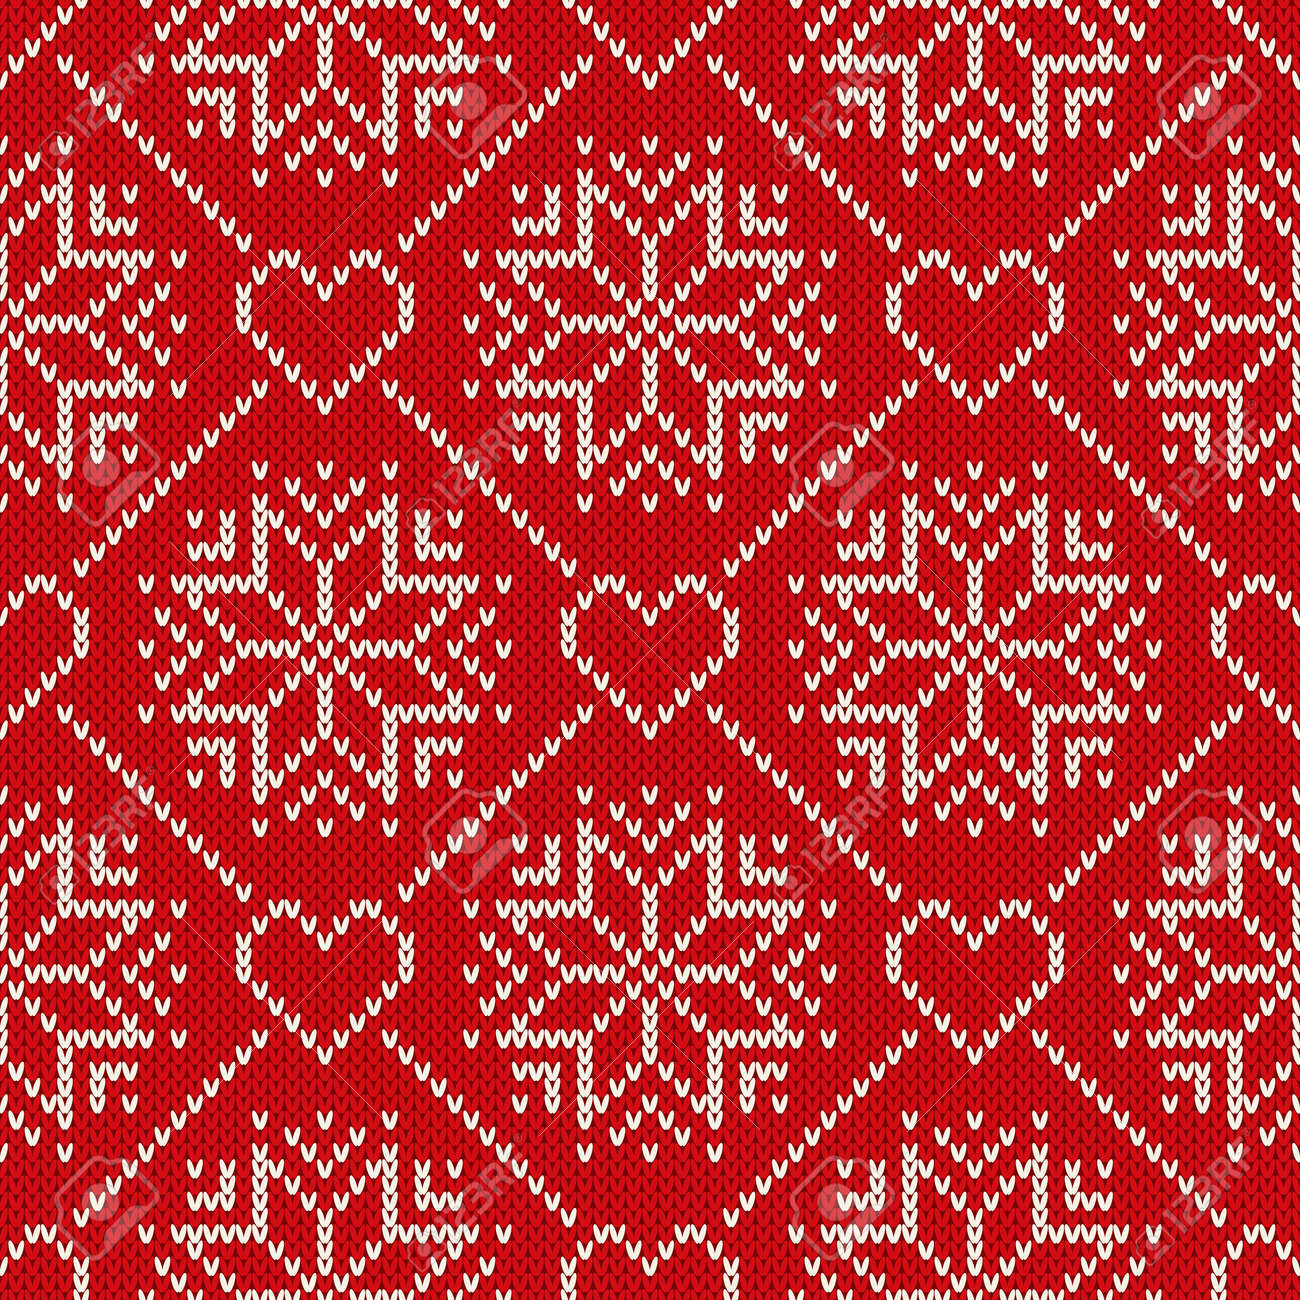 Christmas Holiday Knitted Pattern With Snowflakes And Hearts ...